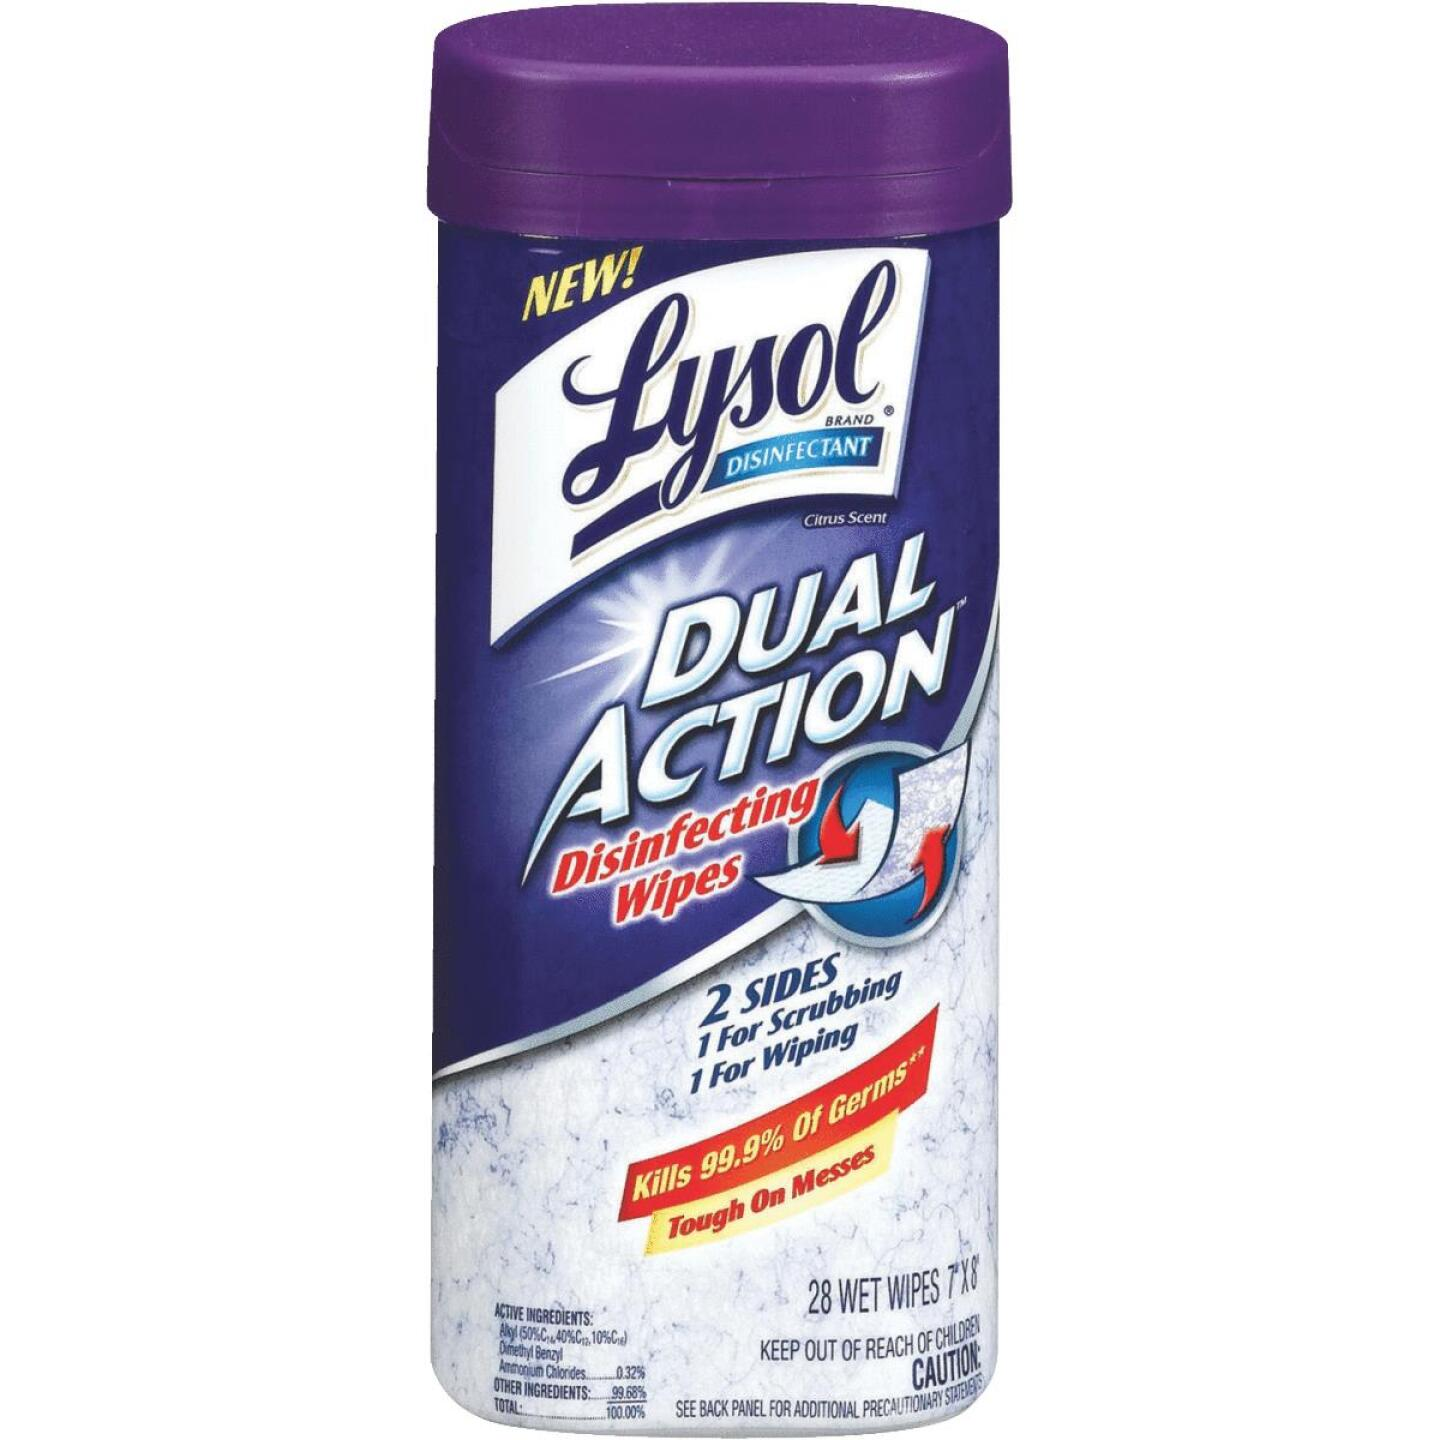 Lysol Dual Action Disinfecting Wipes (28 Count) Image 1